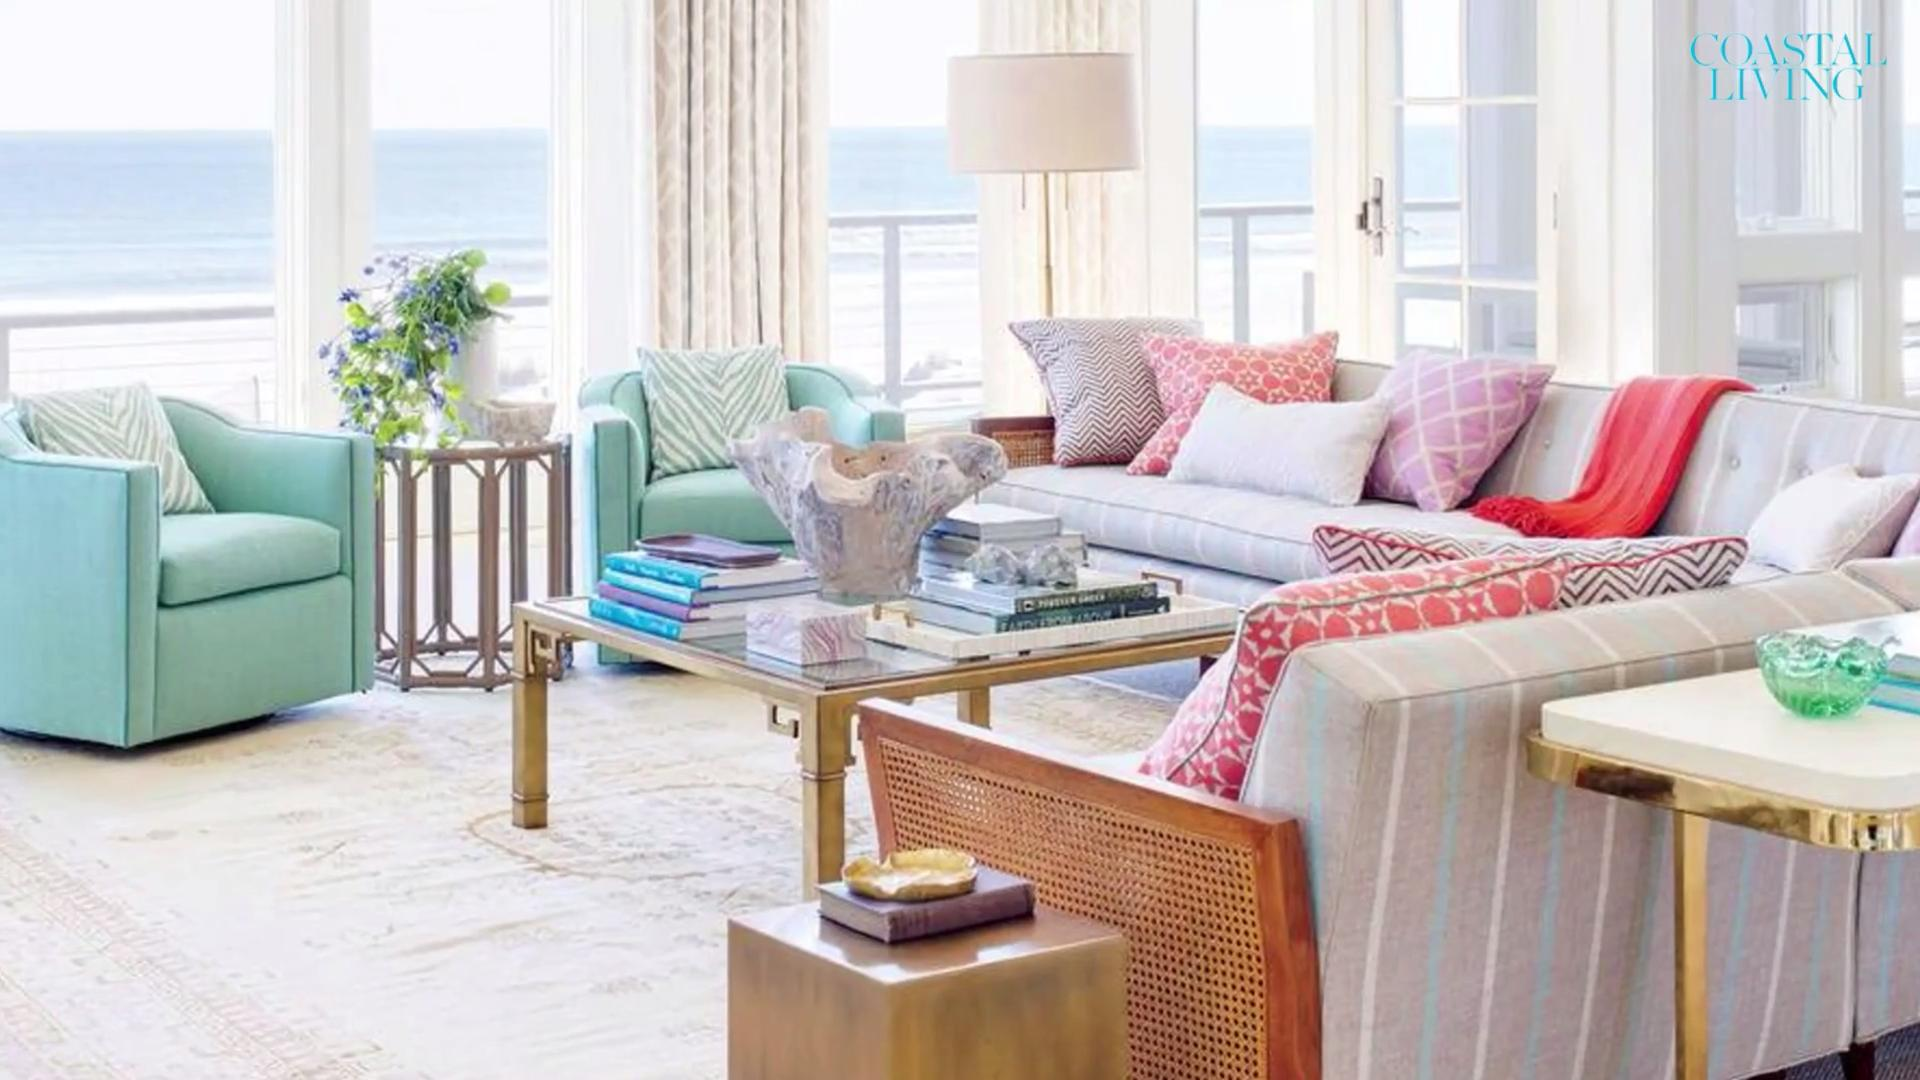 farmhouse decor farmhouse style living room decor split modern apartment decorating ideas These Living Rooms Have Bright, Coastal Style